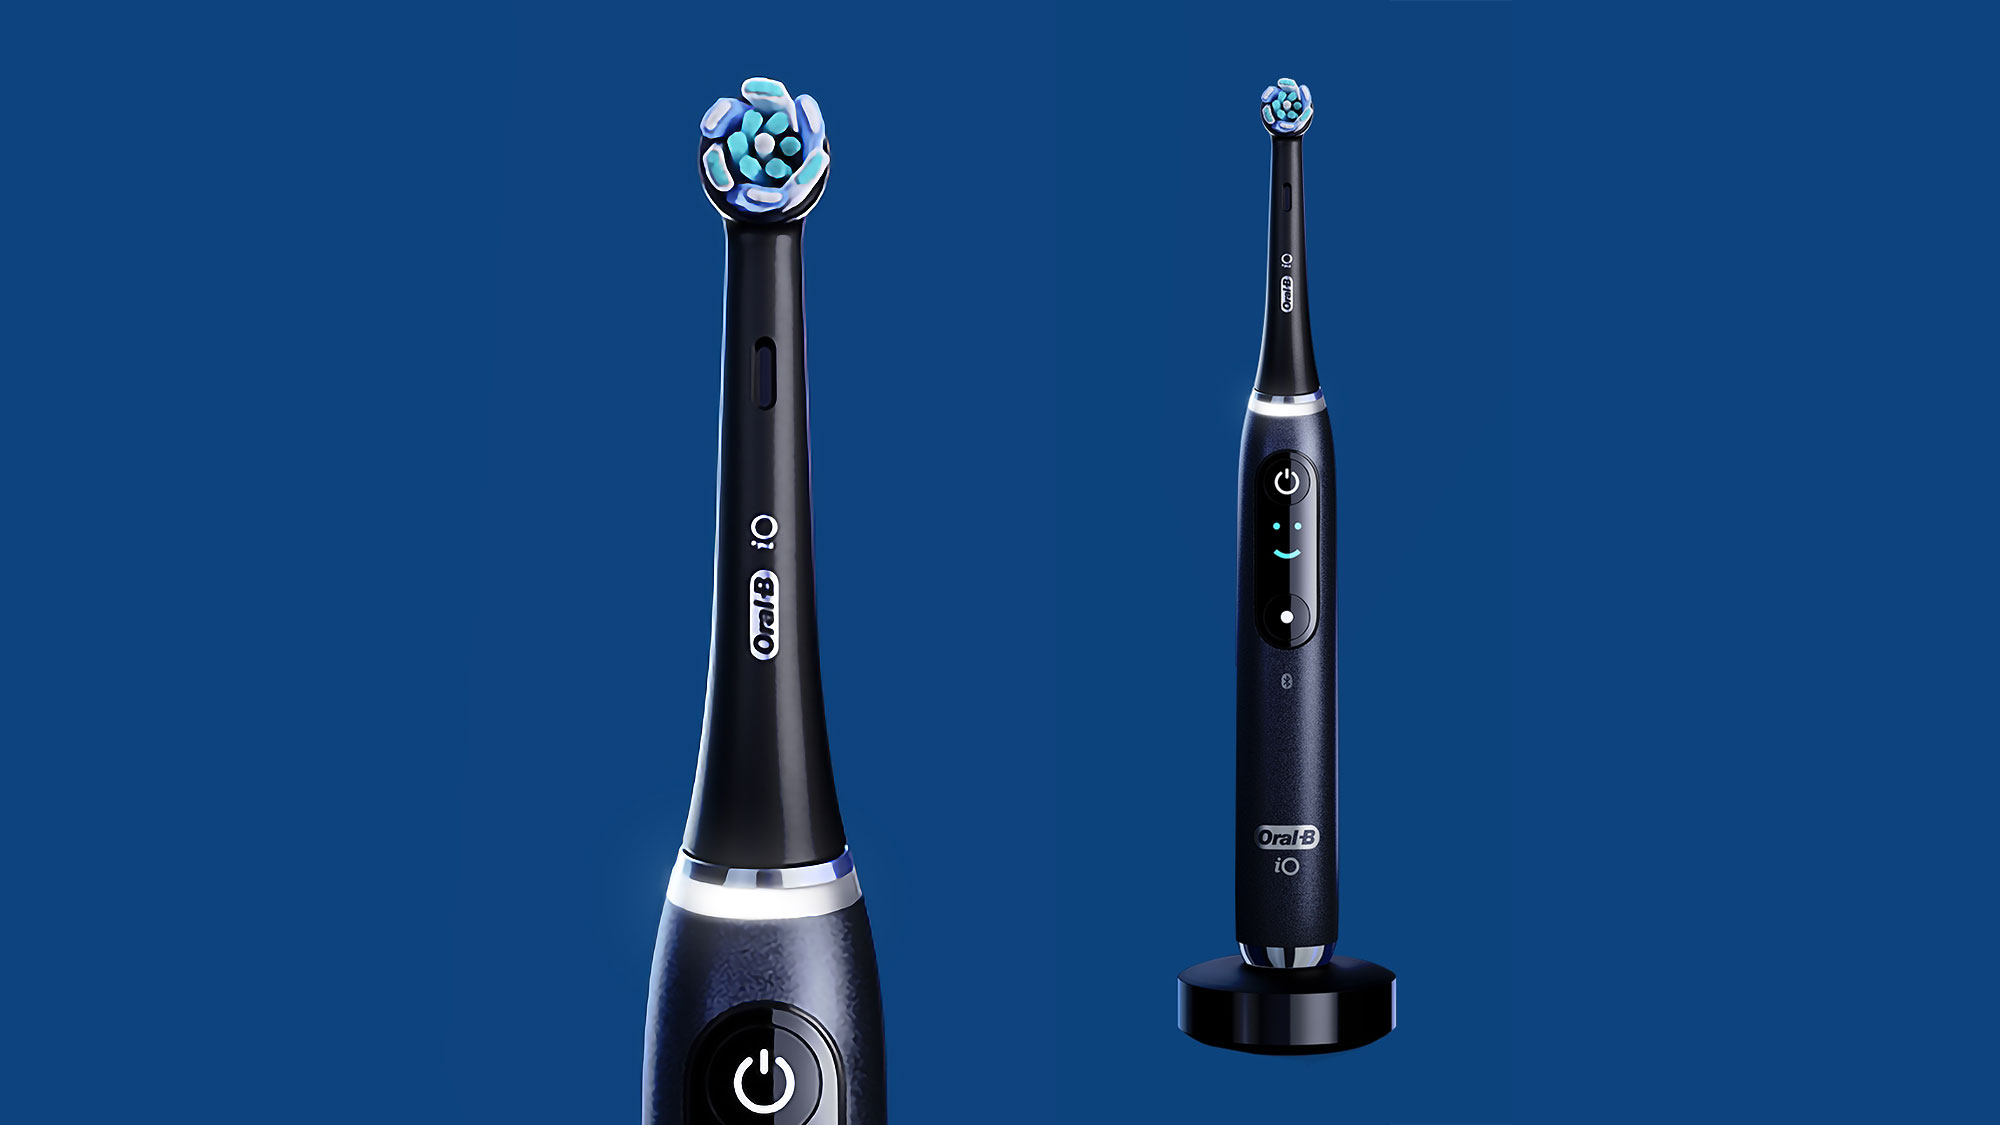 Here's The New Smart Toothbrush From Oral-B That Has Micro